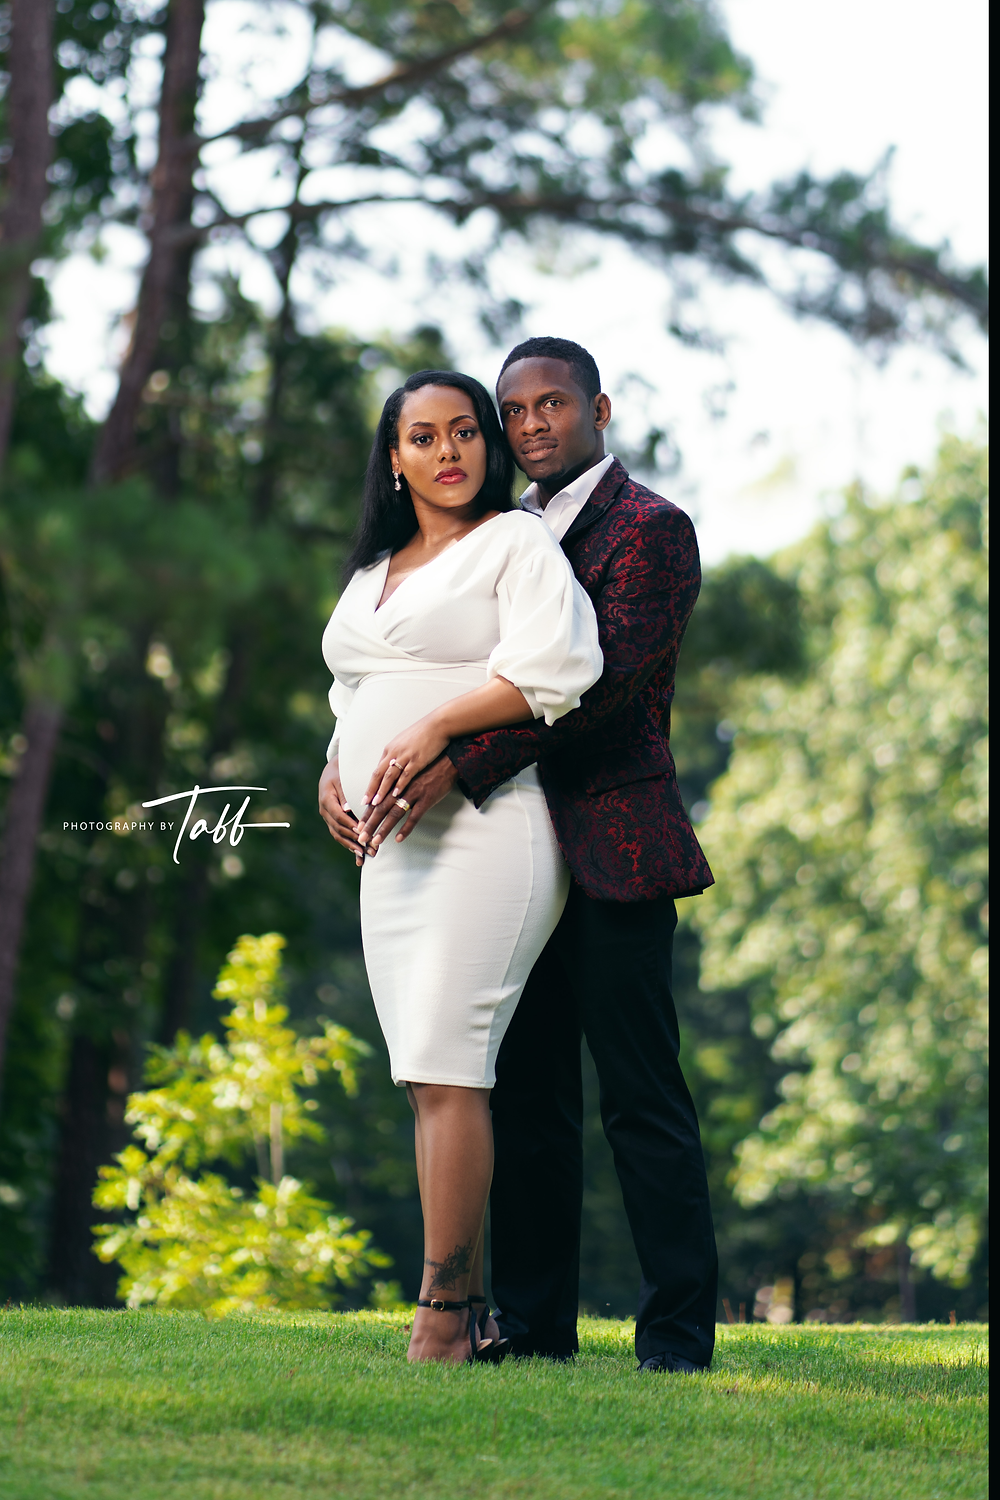 BROOK RUN PARK ELOPEMENT SESSION | Photography by Tabb